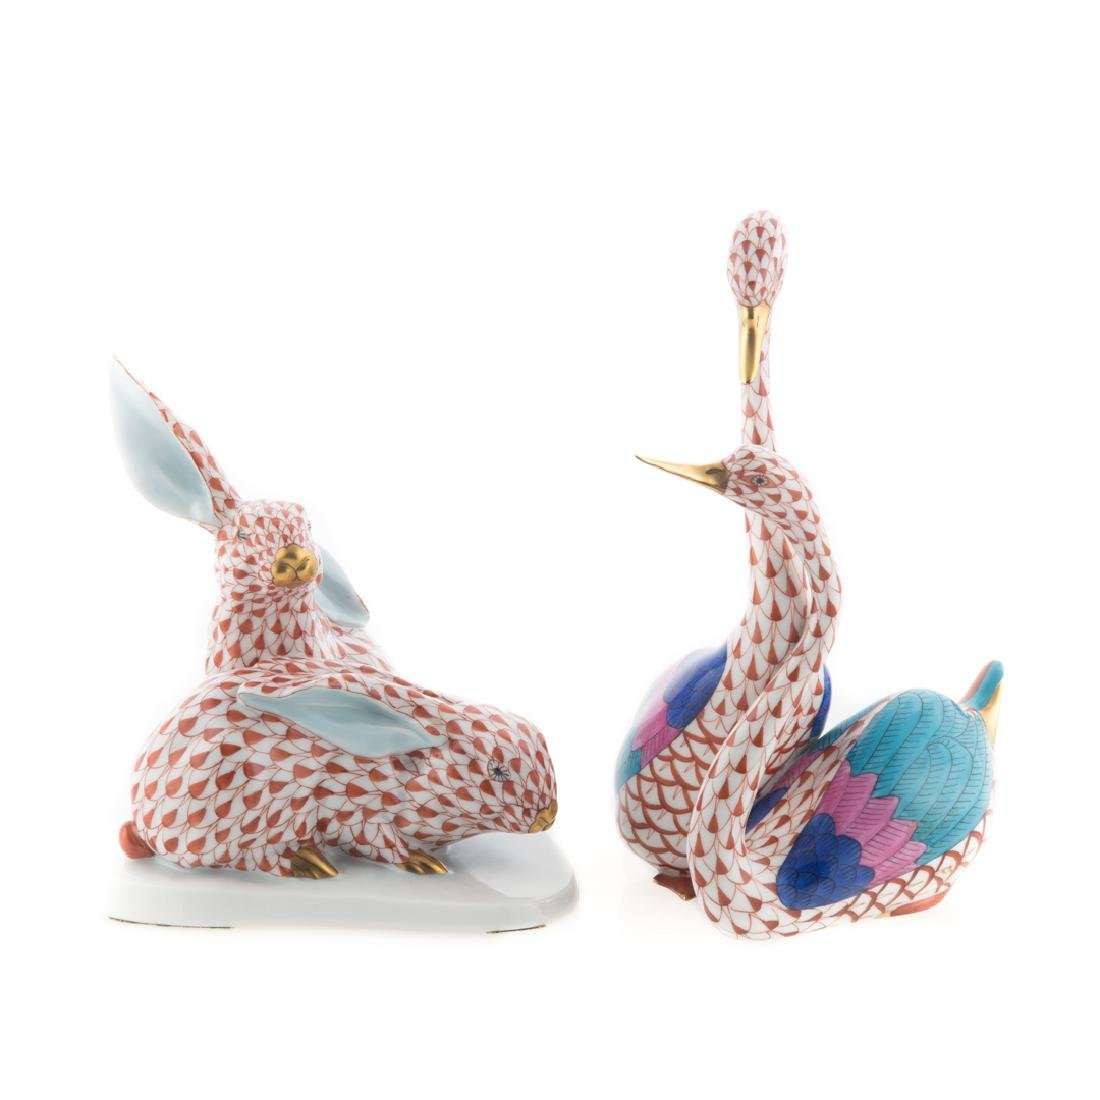 Two Herend porcelain animal groups